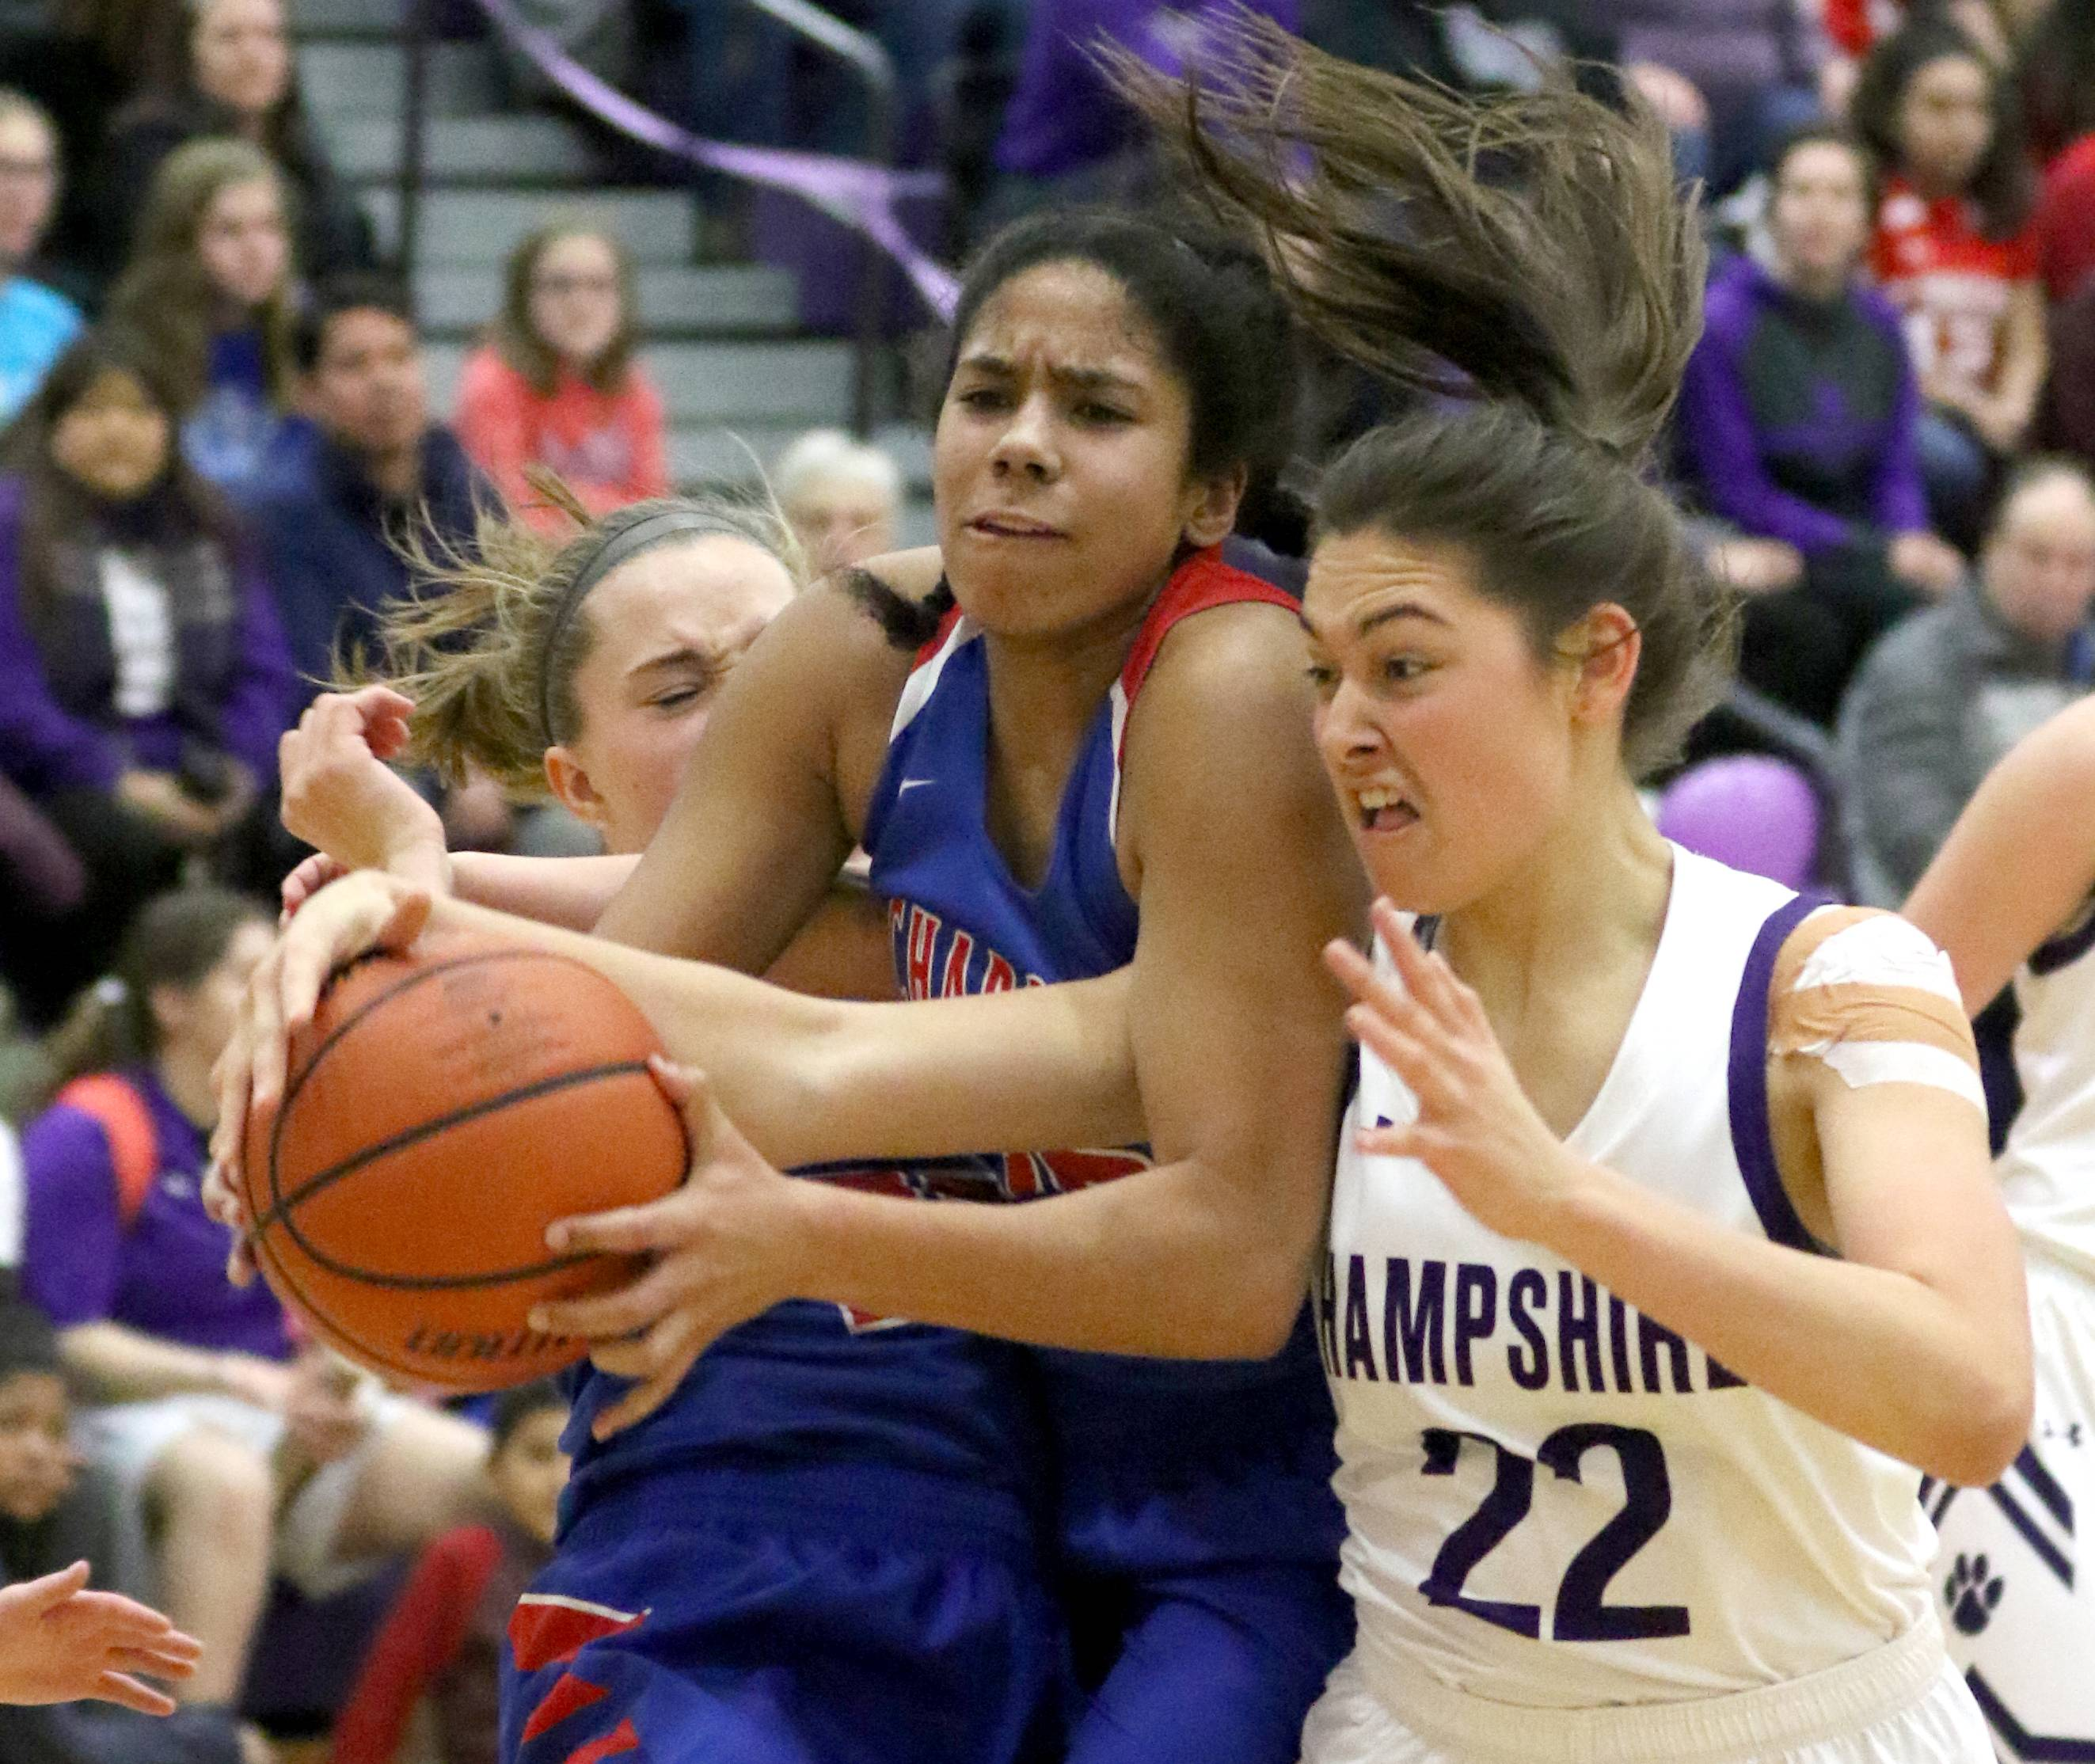 From left, Dundee-Crown's Kendall Kieltyka and Alyssa Crenshaw battle Hampshire's Veronica Walker for the ball during varsity girls basketball at Hampshire Friday night.